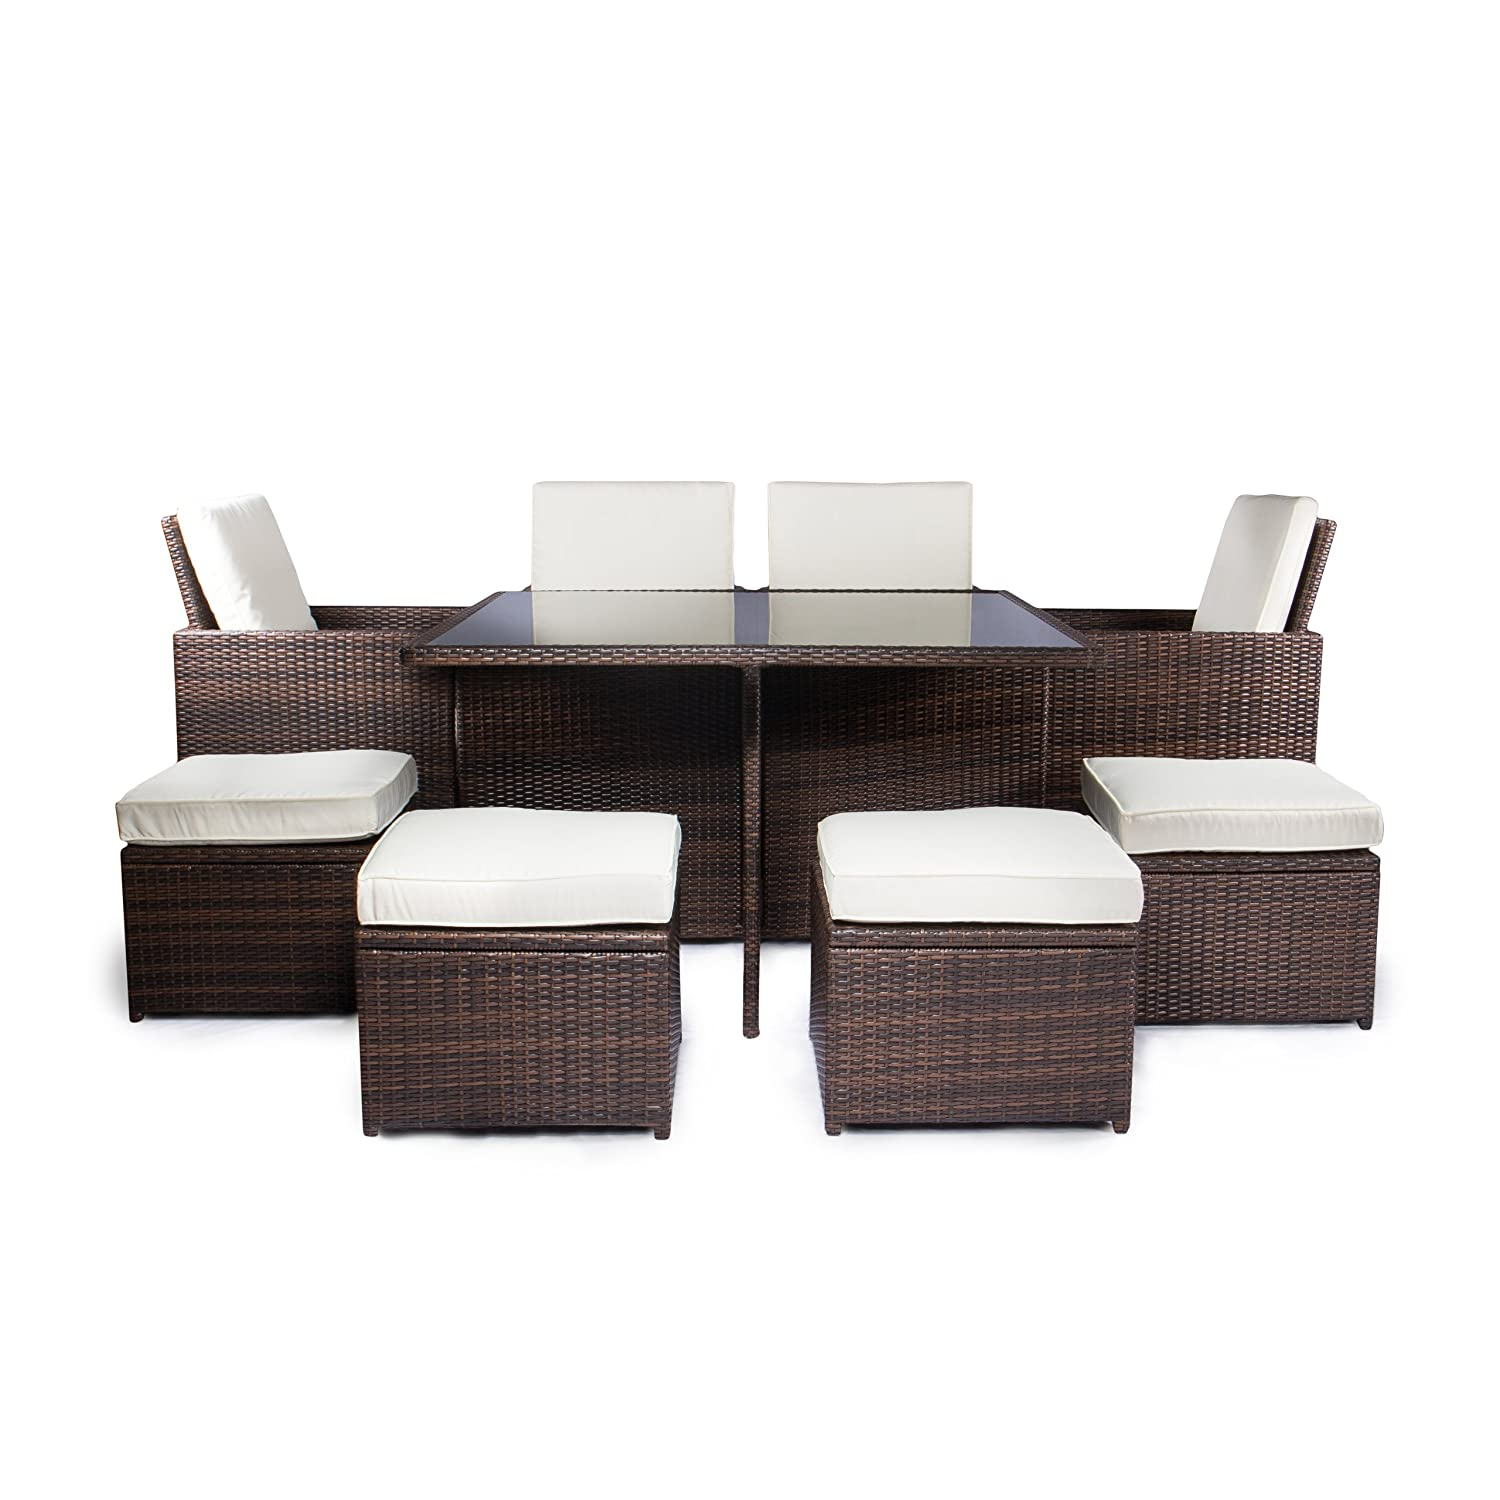 balkonm bel lounge set neuesten design kollektionen f r die familien. Black Bedroom Furniture Sets. Home Design Ideas